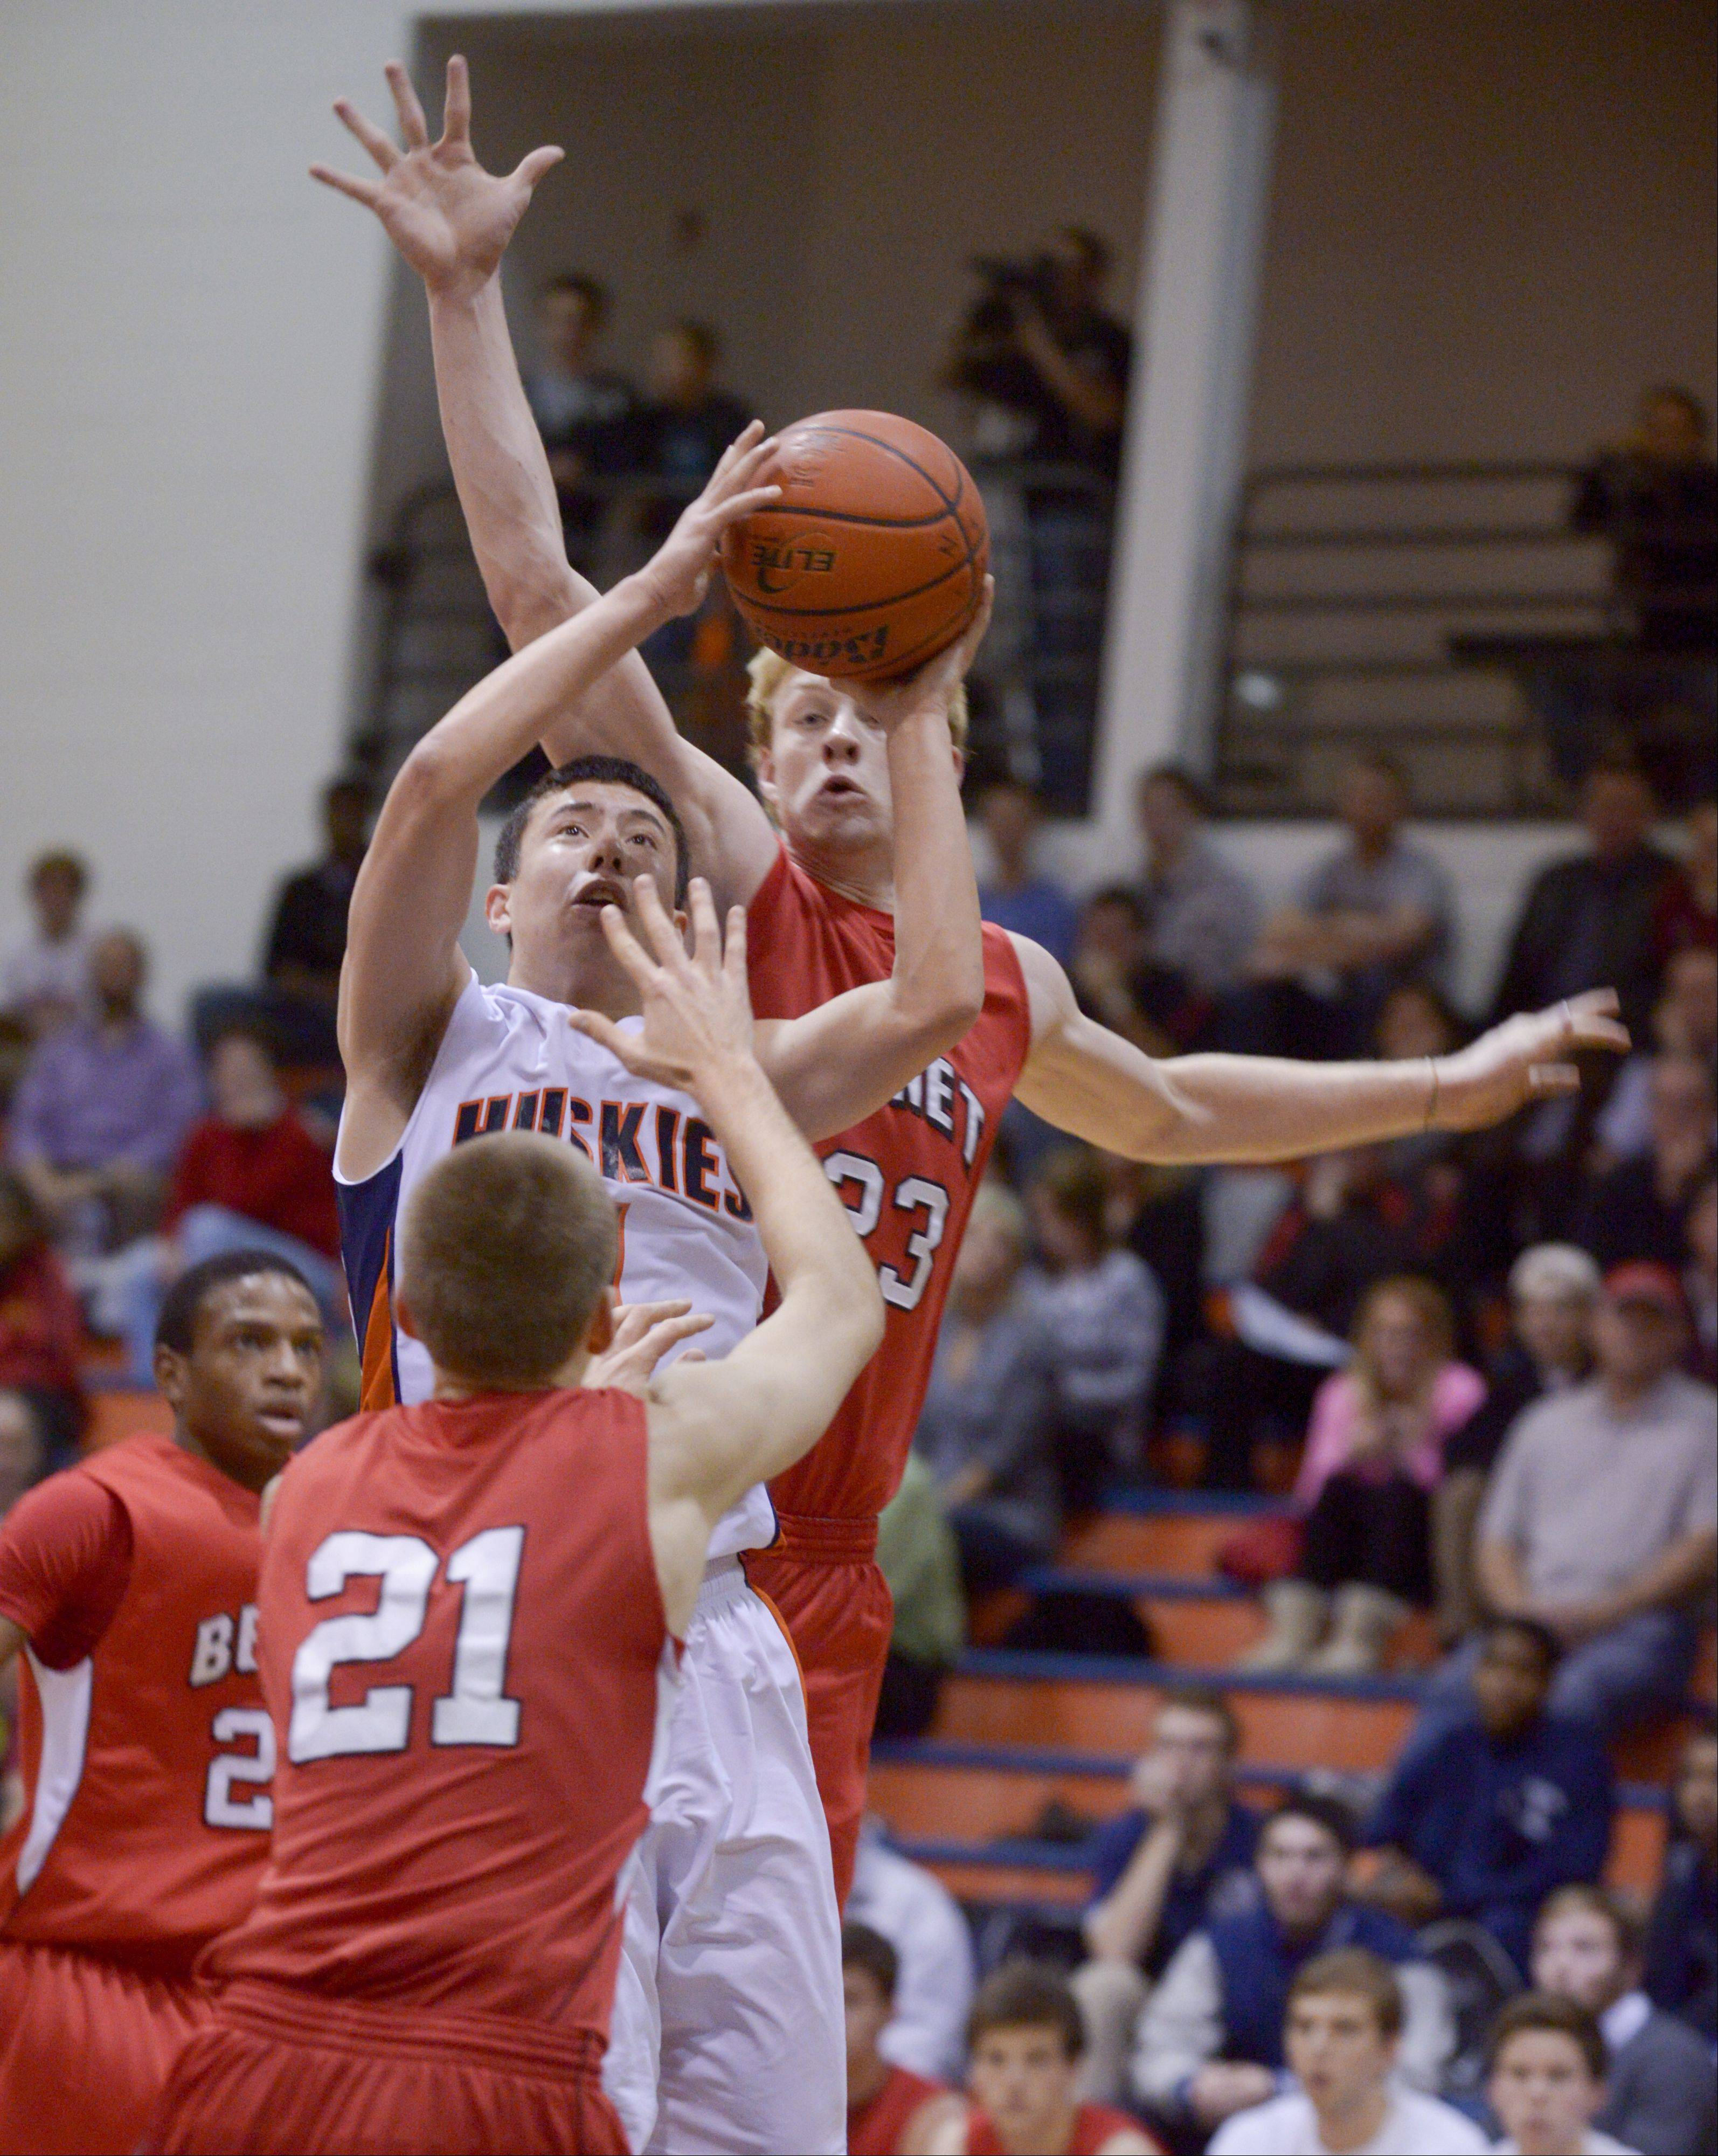 Naperville North's Jayson Winick works to take a shot past Benet's Daniel Roemer during in boys basketball in Naperville Sunday.